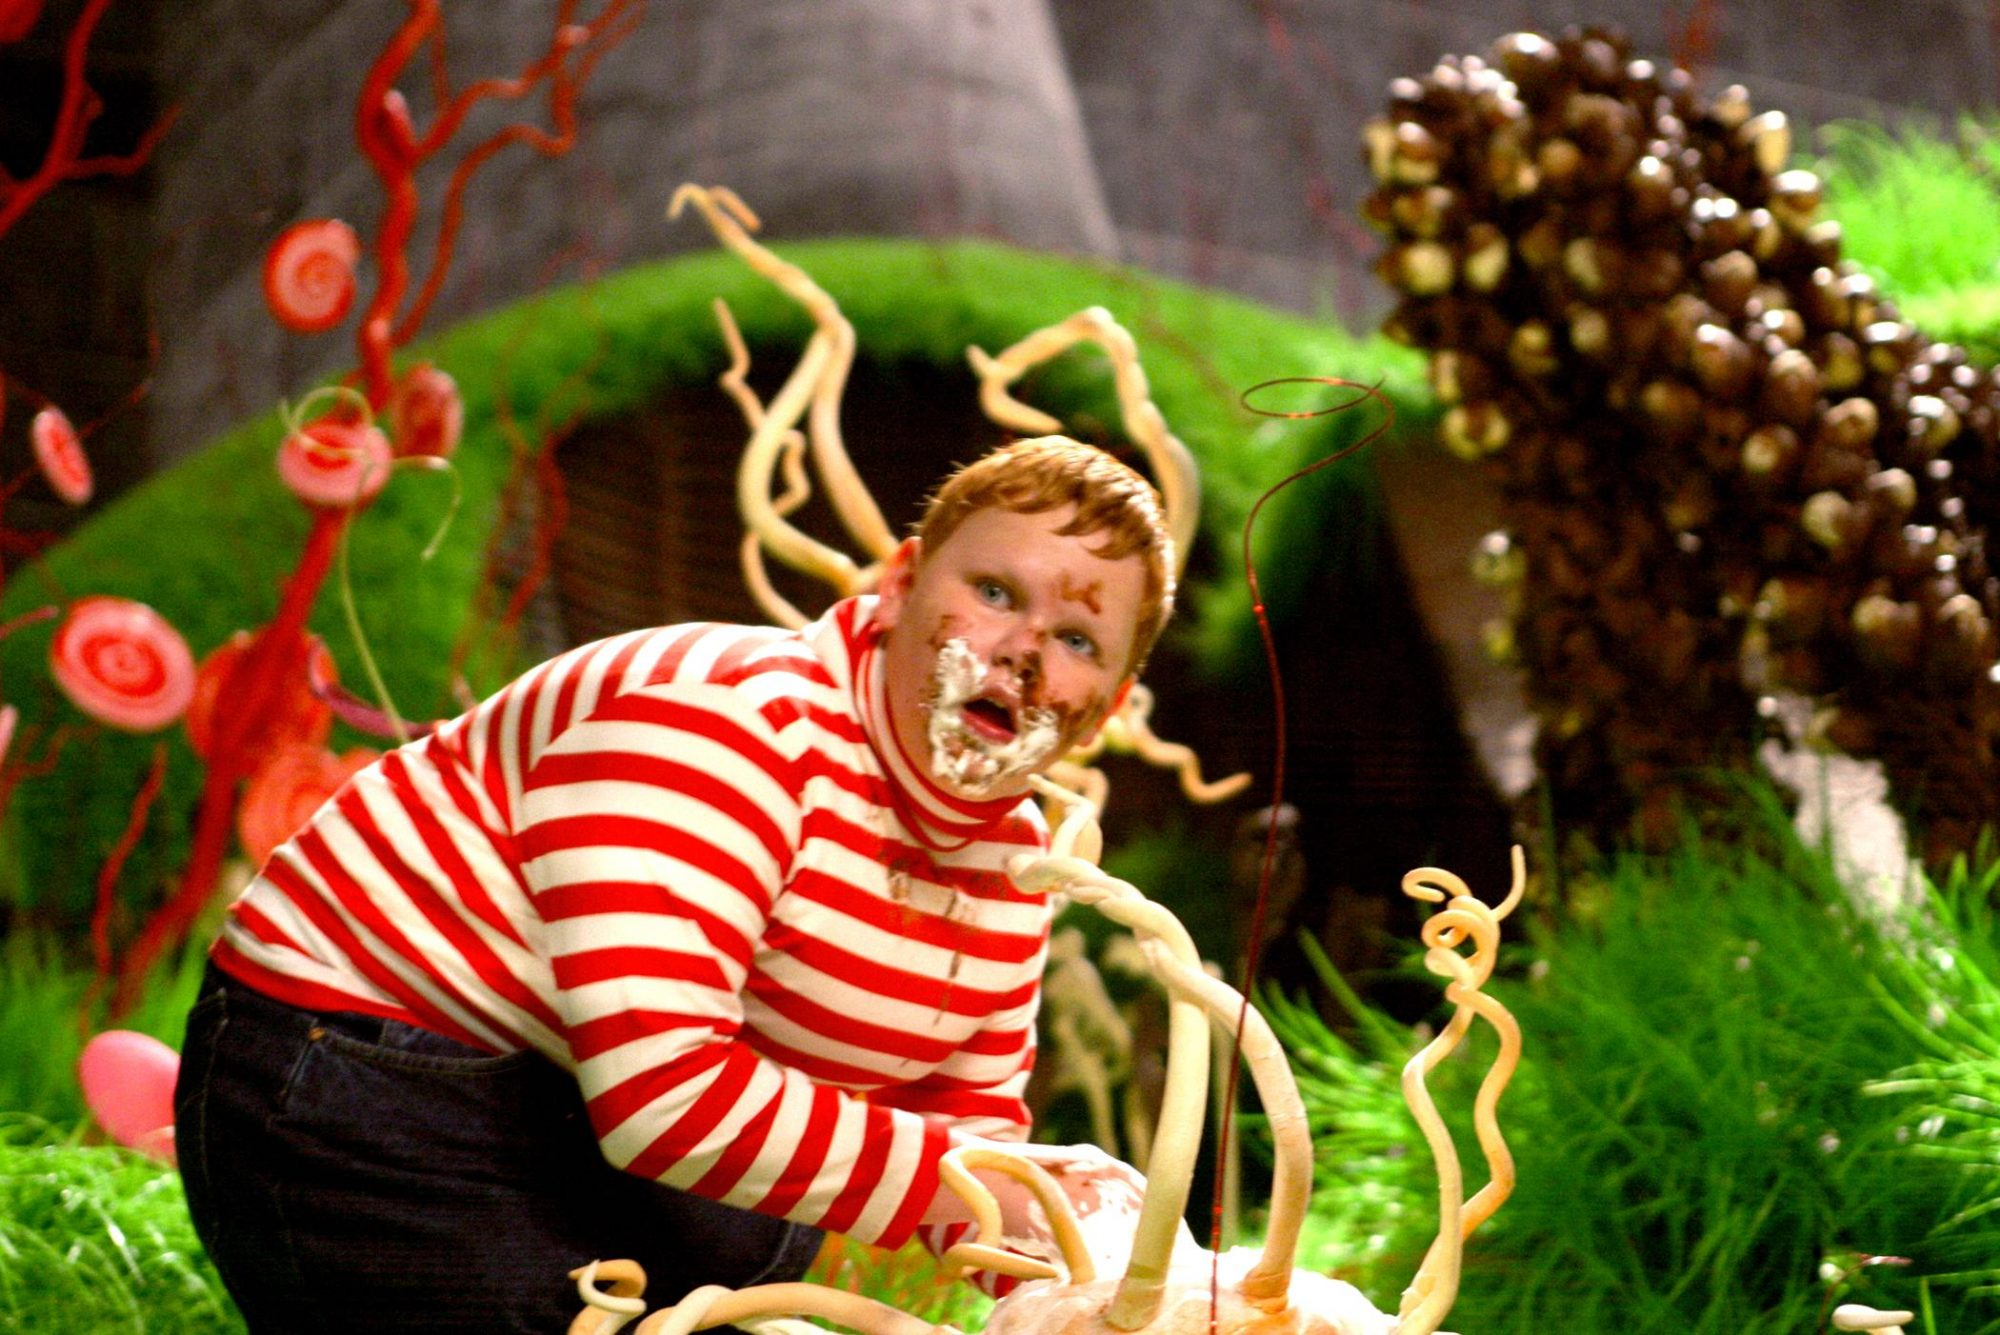 635807443351262439-113811015_2005-charlie-and-the-chocolate-factory-014-1